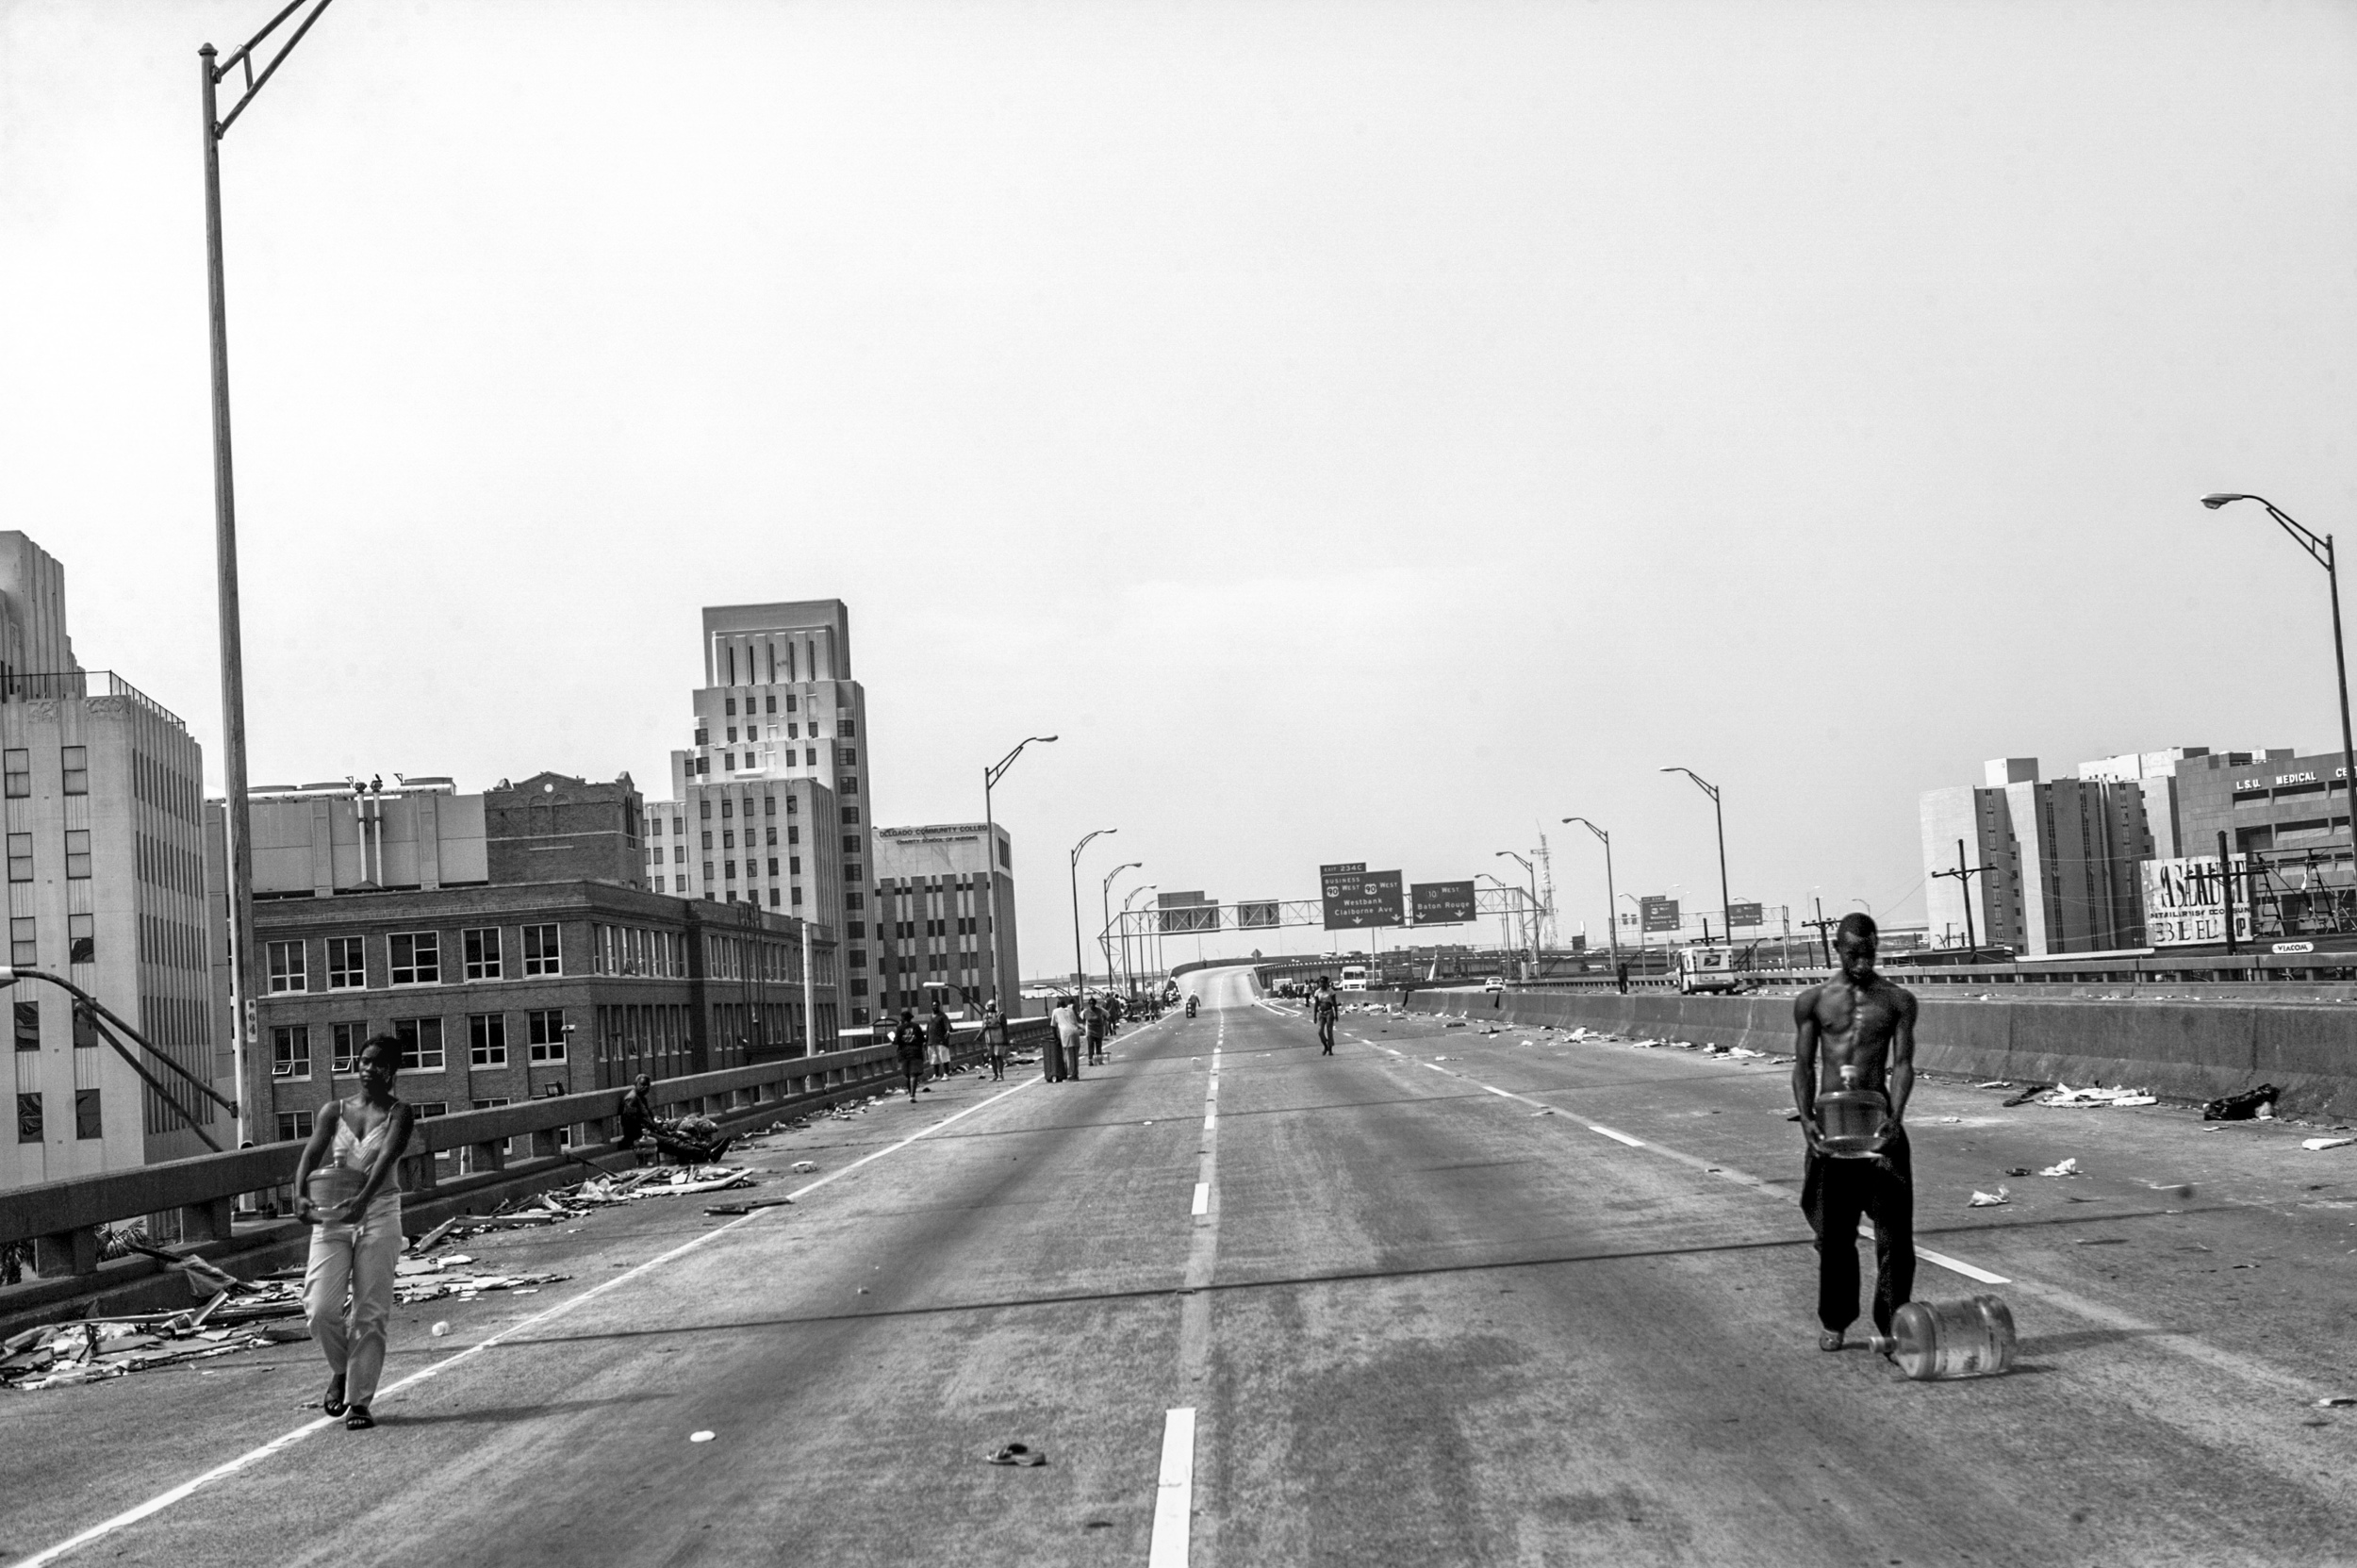 For up to four days almost 300 New Orleans residents, mostly African Americans, were stranded on Interstate 10 until they were finally rescued by aid helicopters. During the four days on this asphalt camp they ran out of water, food and medicine. People died waiting for help.